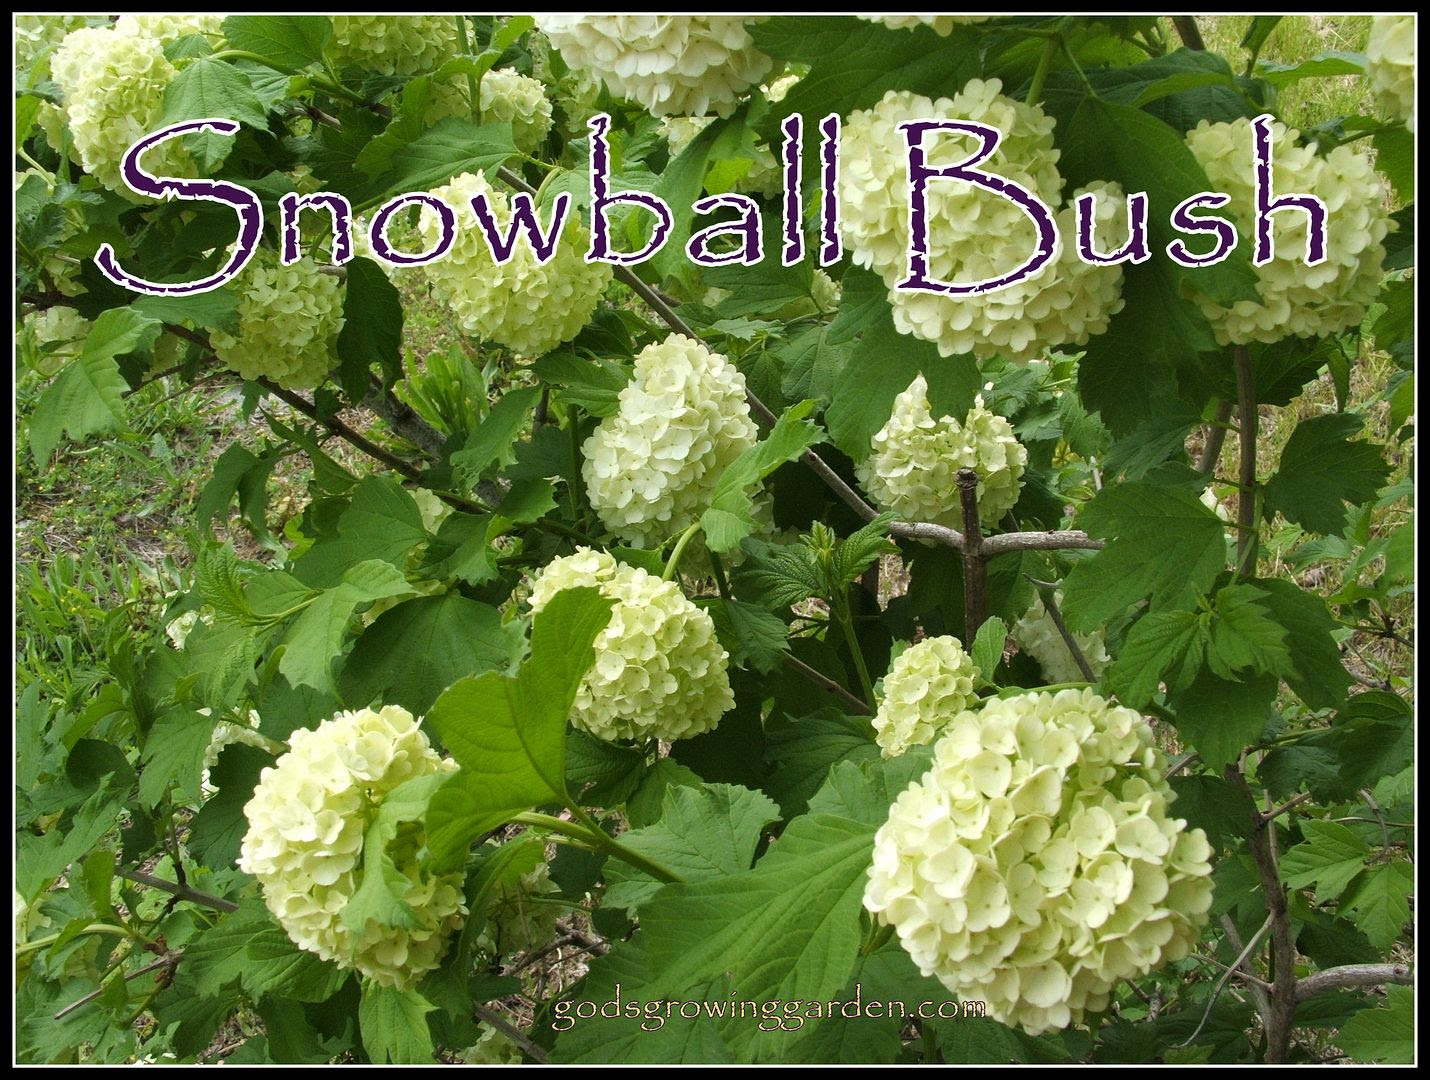 Snowball Bush by Angie Ouellette-Tower for godsgrowinggarden.com photo 008_zpsfea860a1.jpg